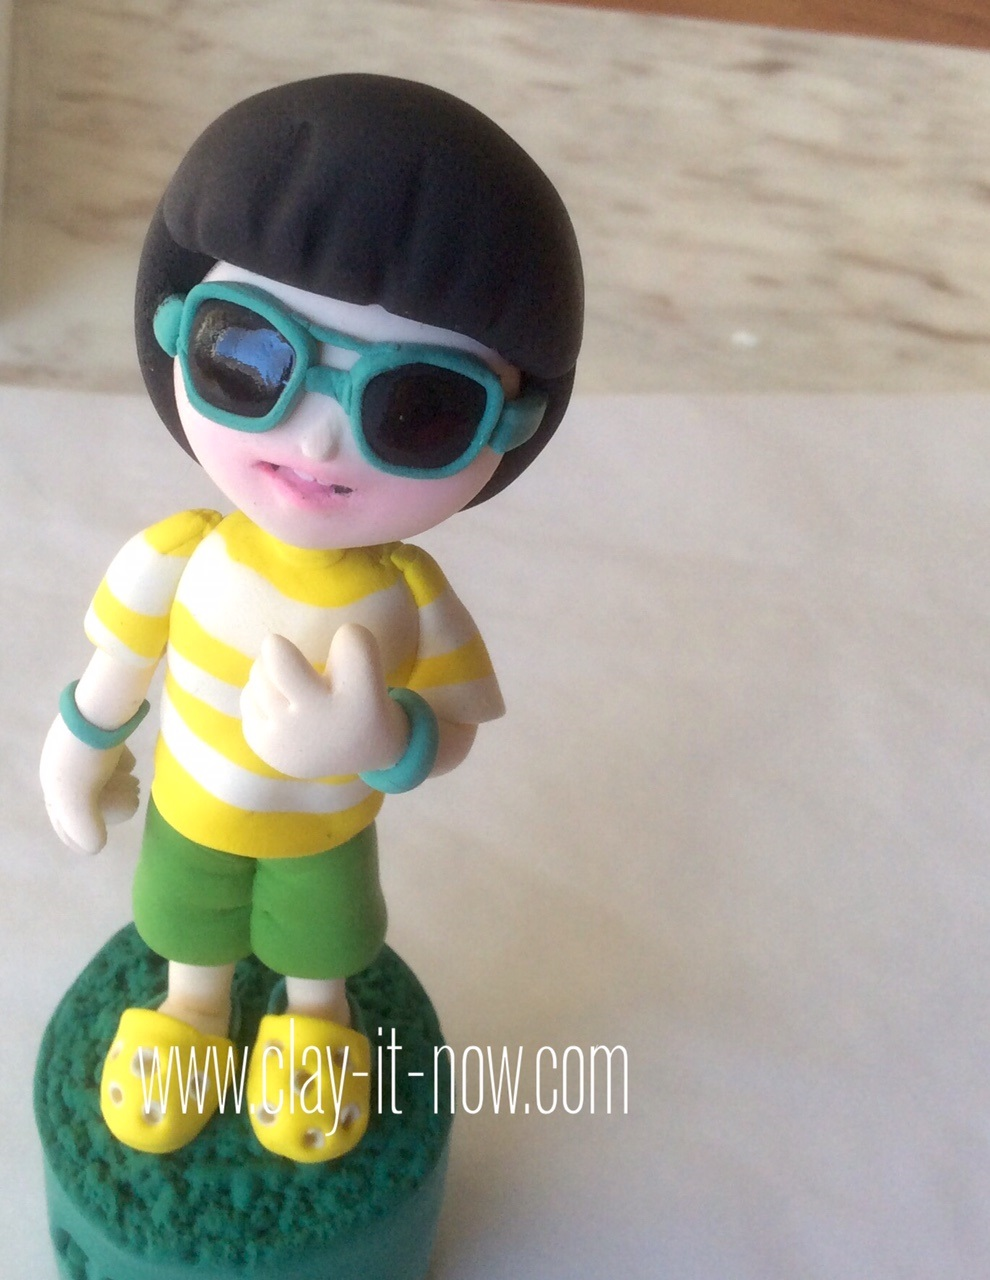 cool boy figurine,how to make life-like figurine-boy